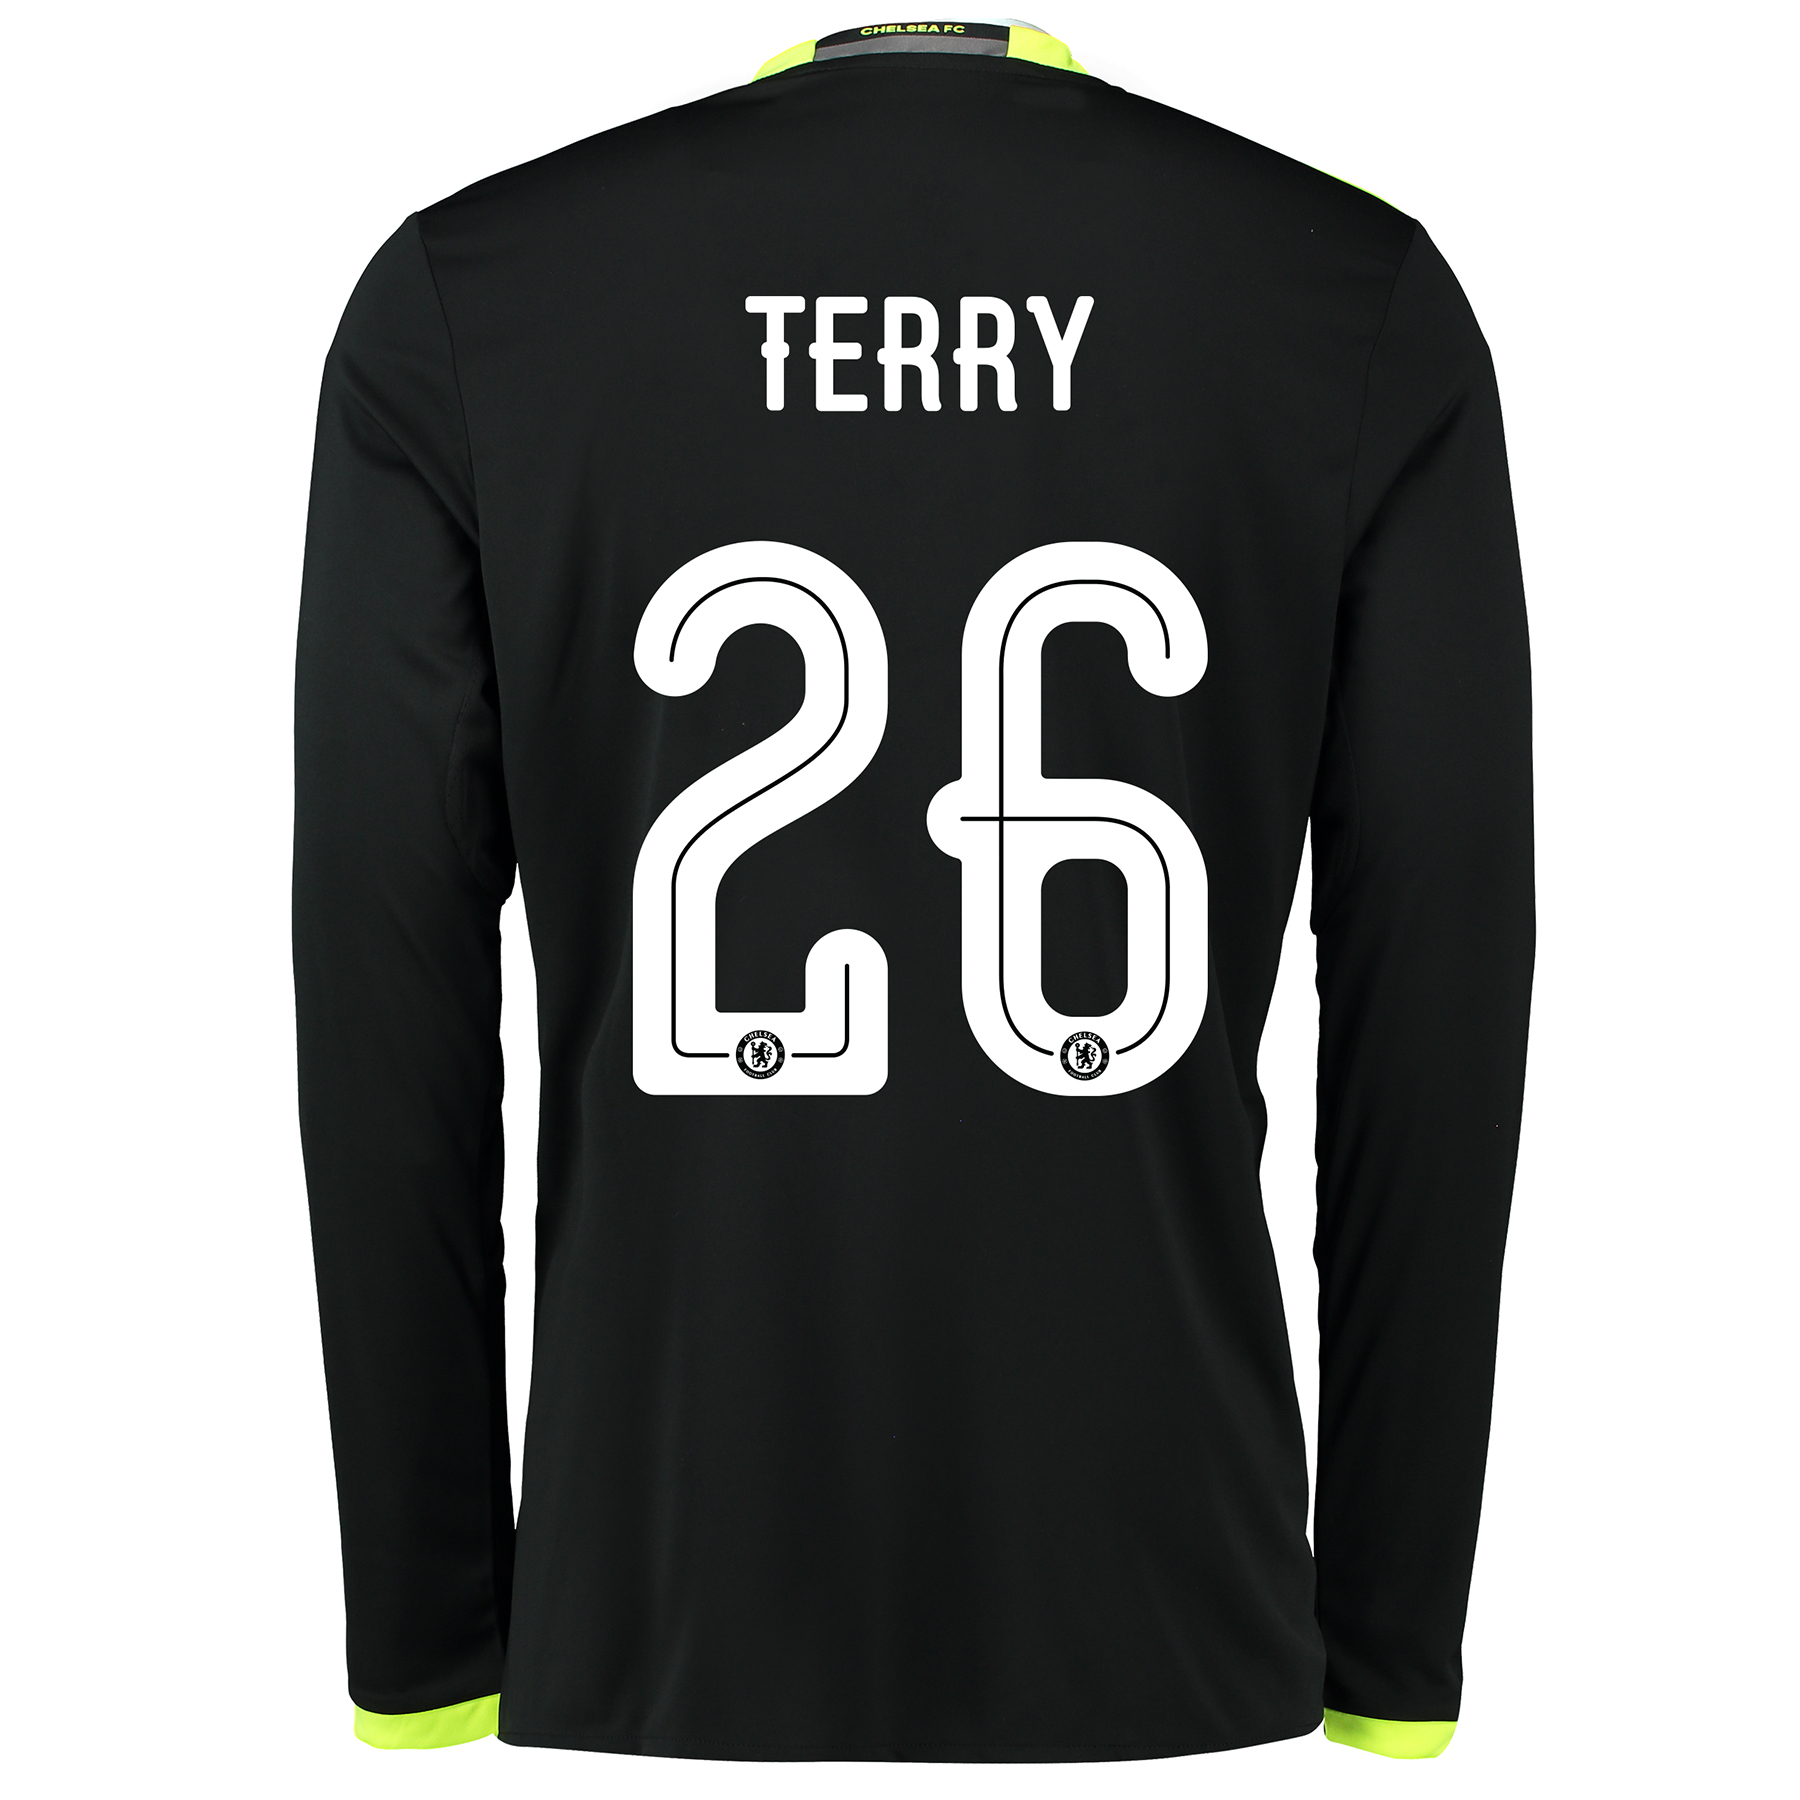 Chelsea Linear Away Shirt 16-17 - Kids - Long Sleeve with Terry 26 pri